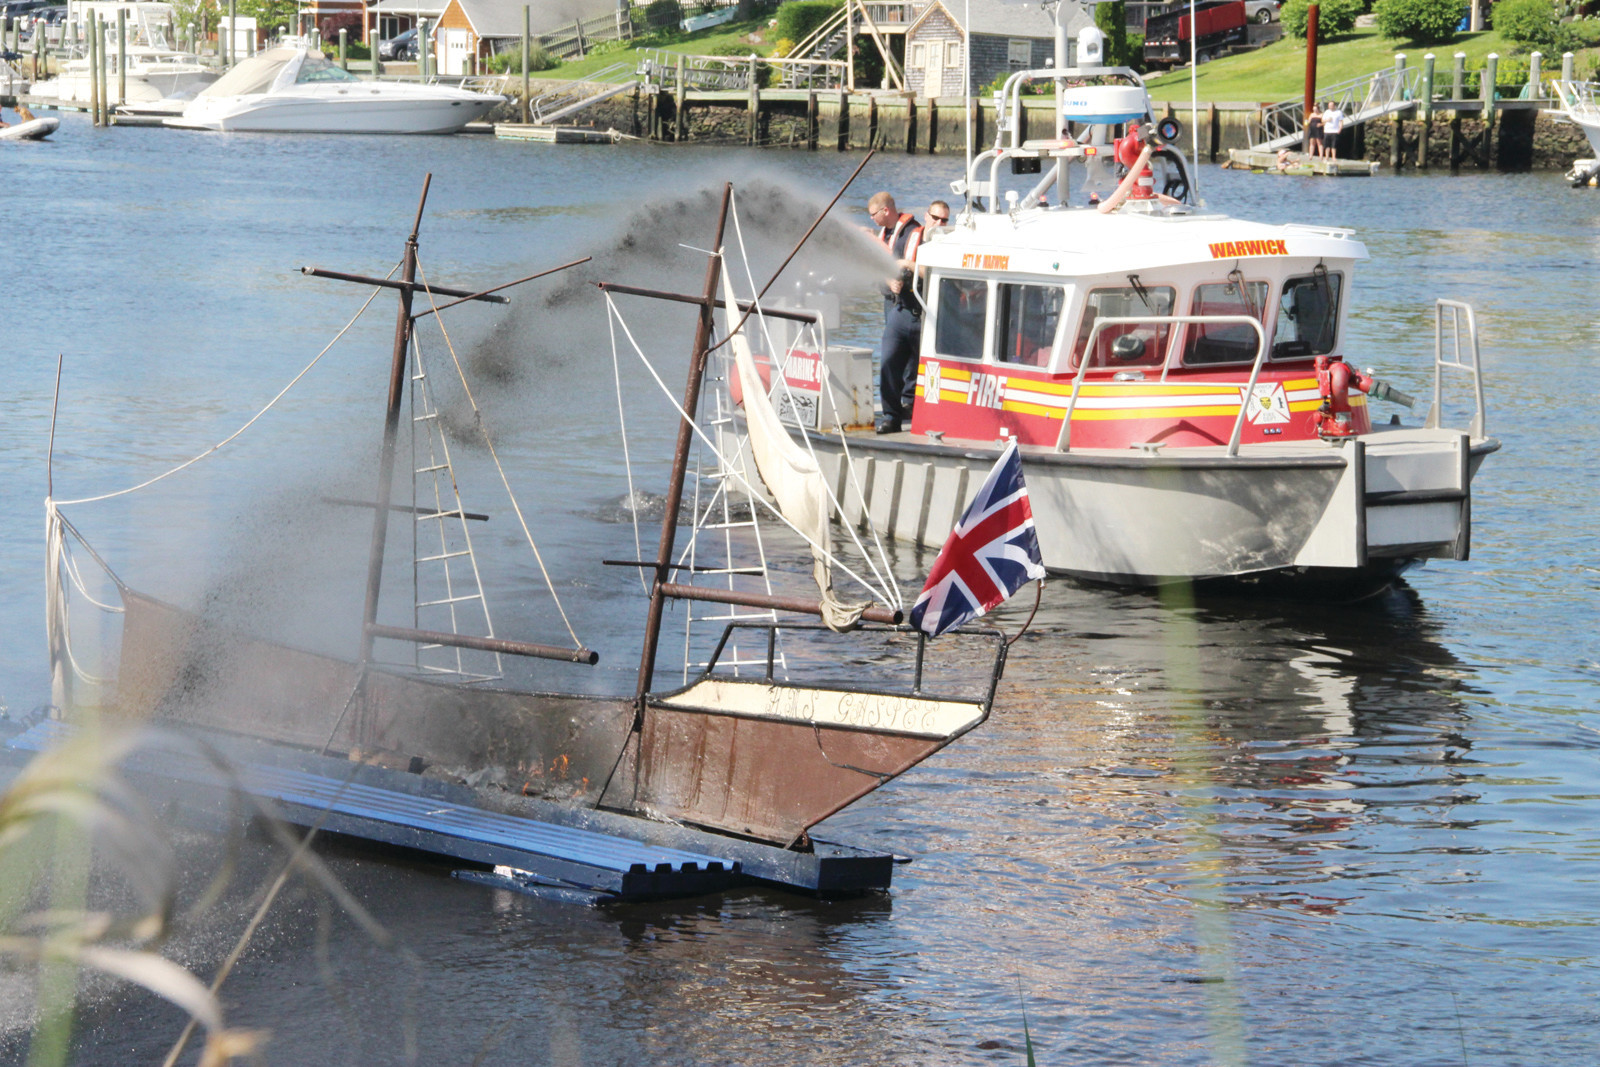 END OF ANOTHER GASPEE DAYS: A Warwick Fire Department boat douses the Gaspee as the 52nd annual celebration comes to a close on Sunday afternoon.